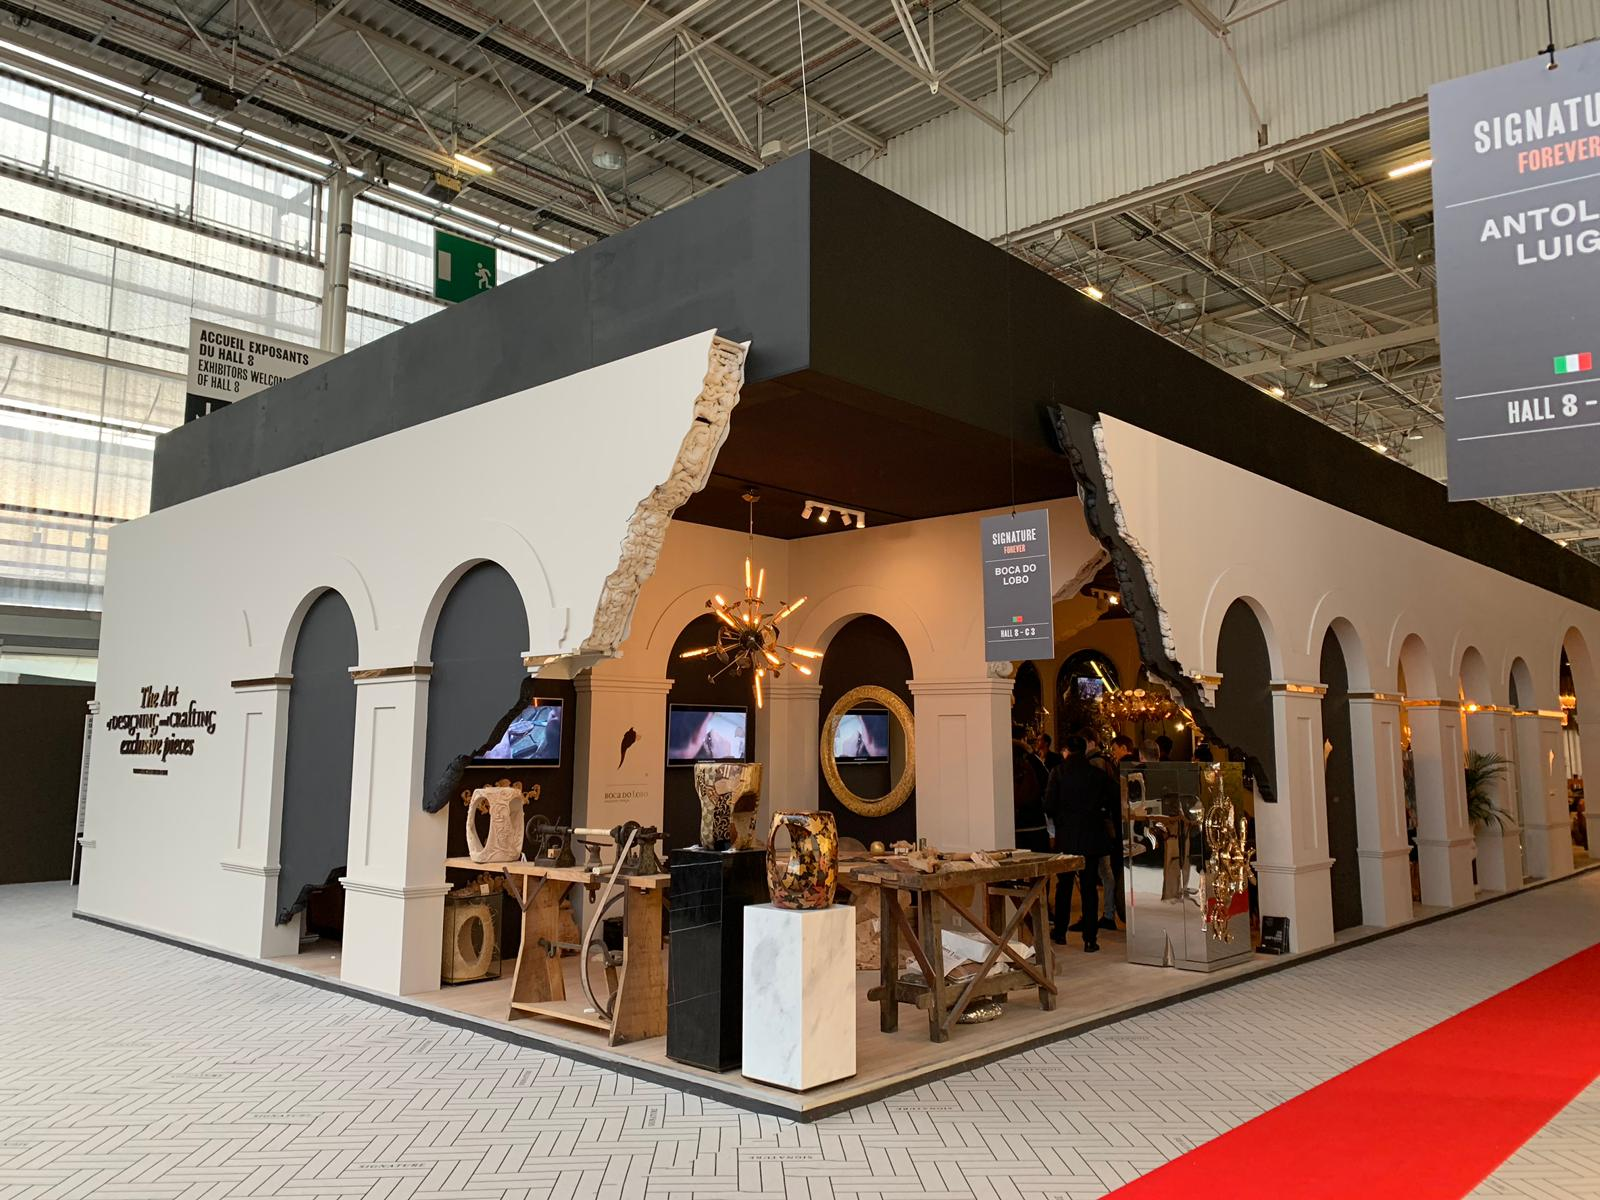 Maison et Objet 2019 – First Highlights from the First Day maison et objet2019 Maison et Objet2019 – First Highlights from the First Day Maison et Objet 2019     First Highlights from the First Day 9